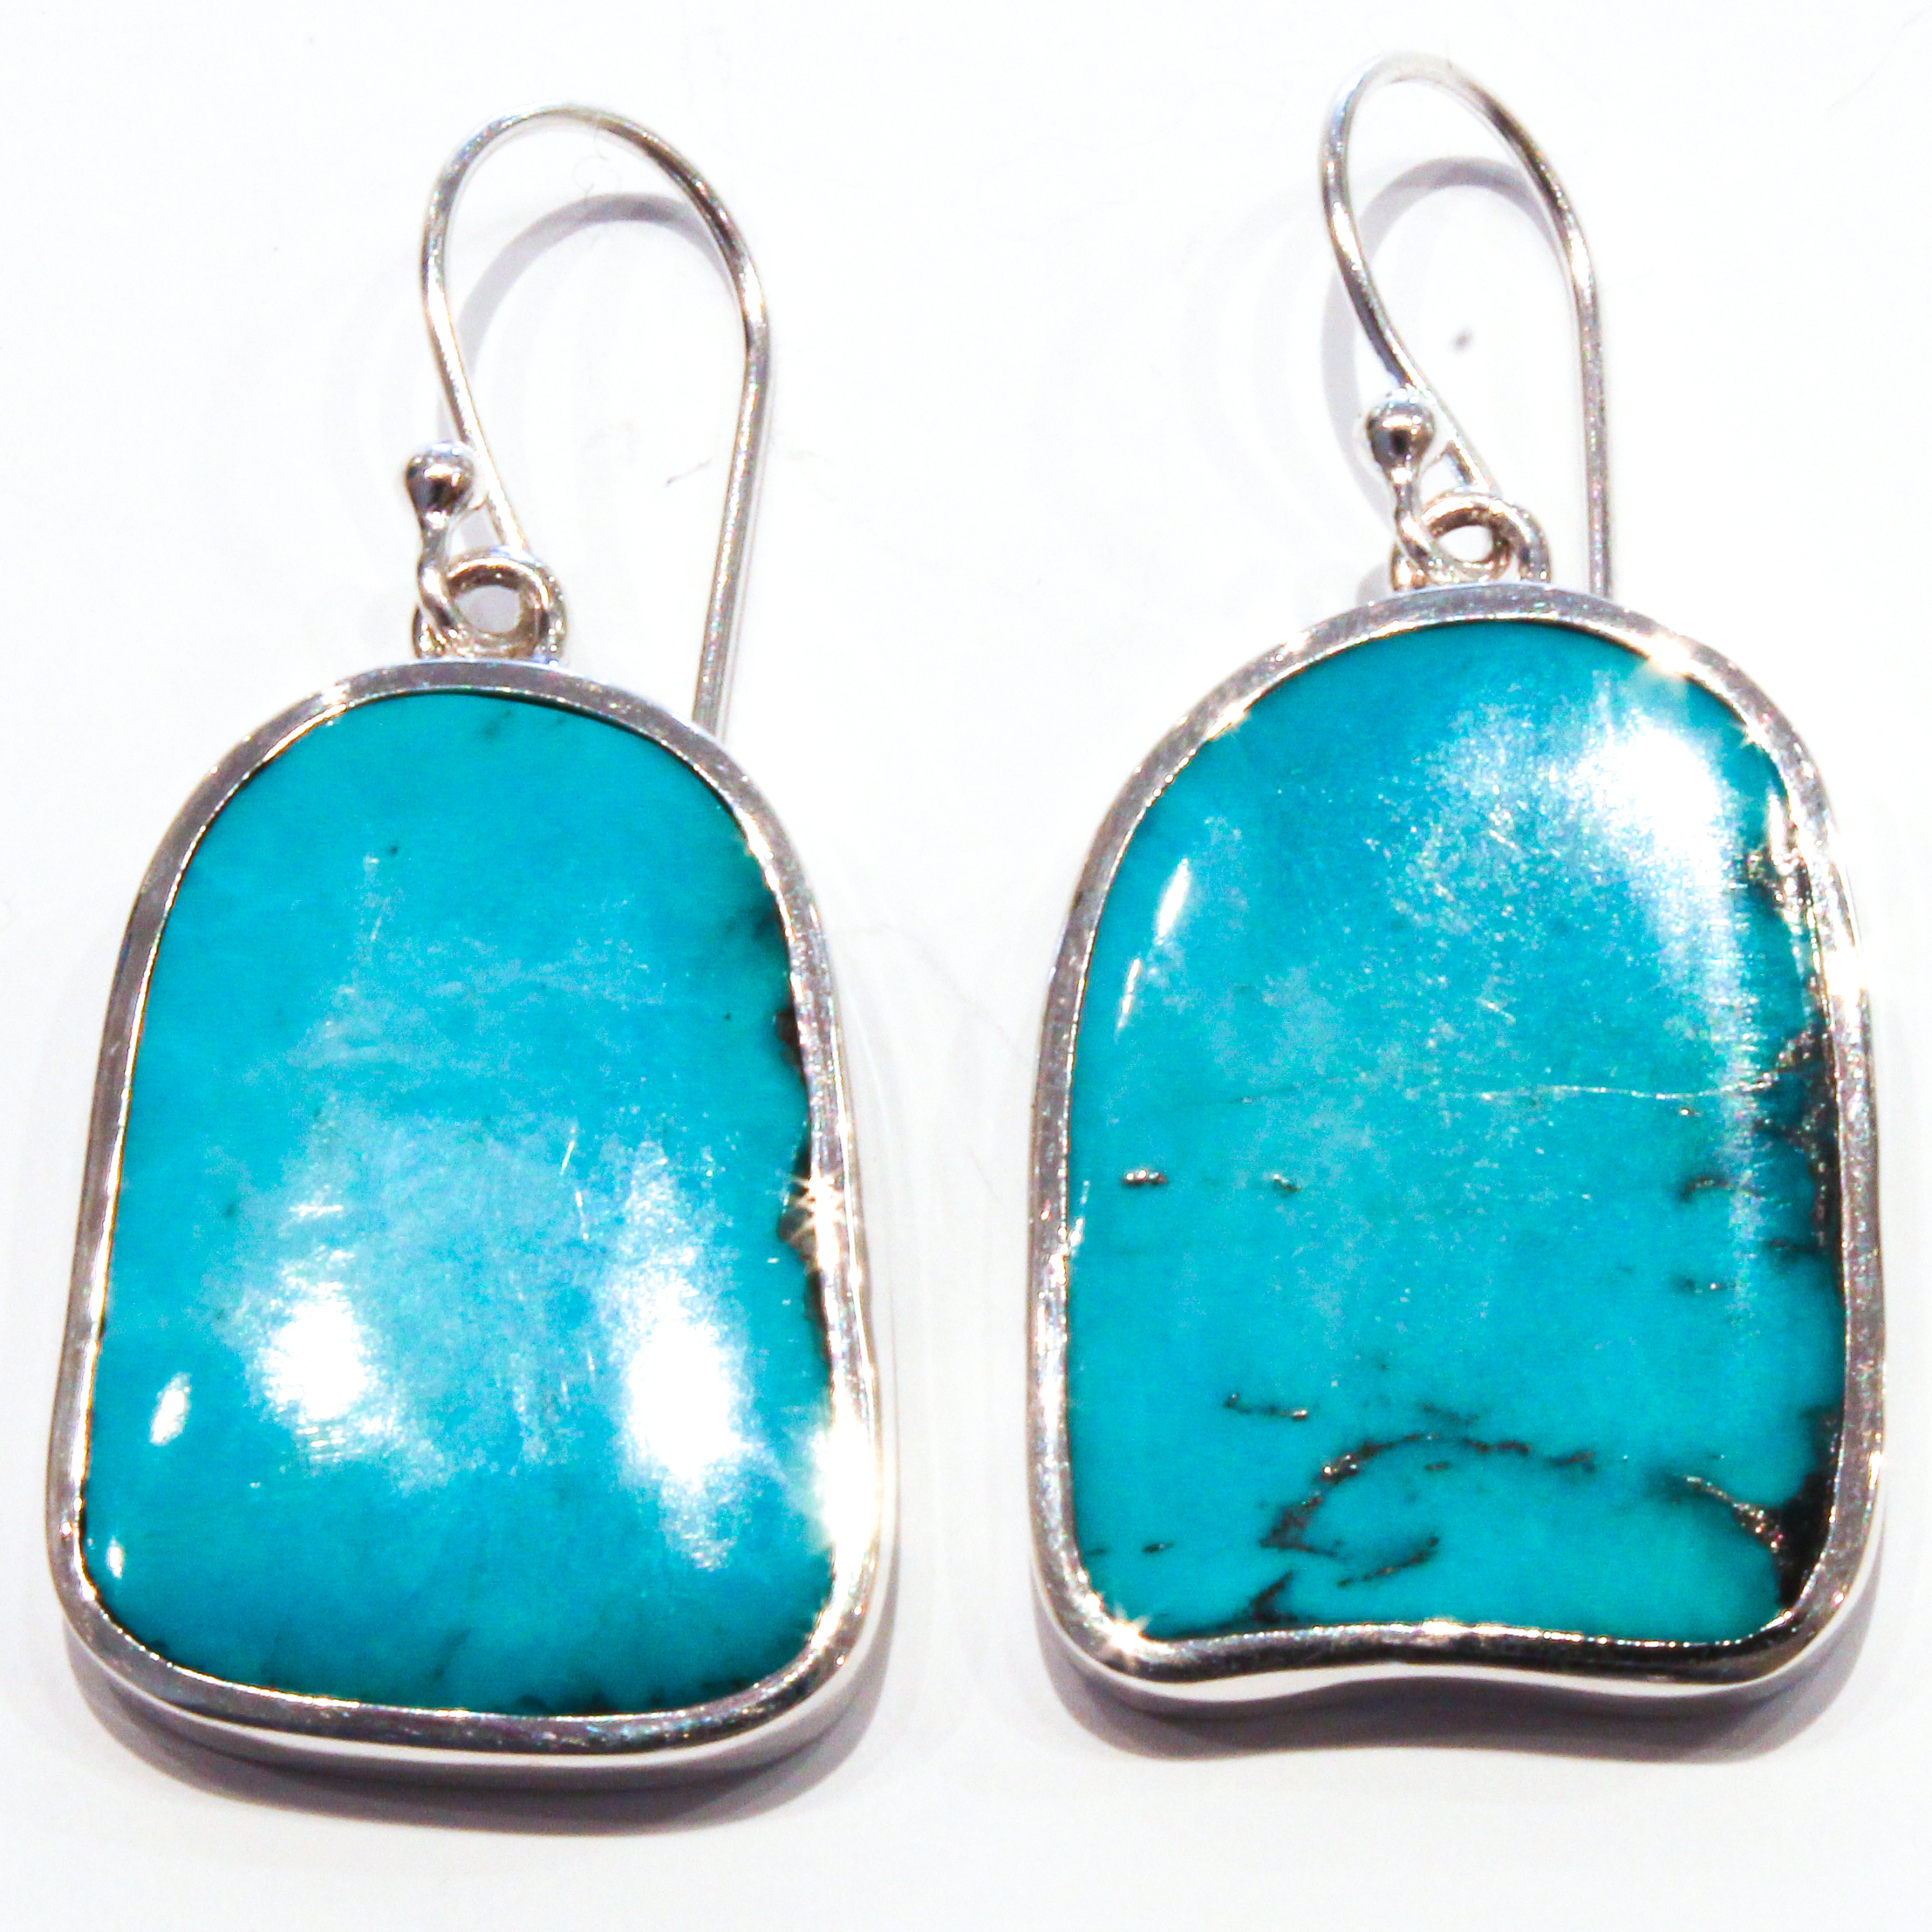 Arizona Turquoise Handmade Earrings